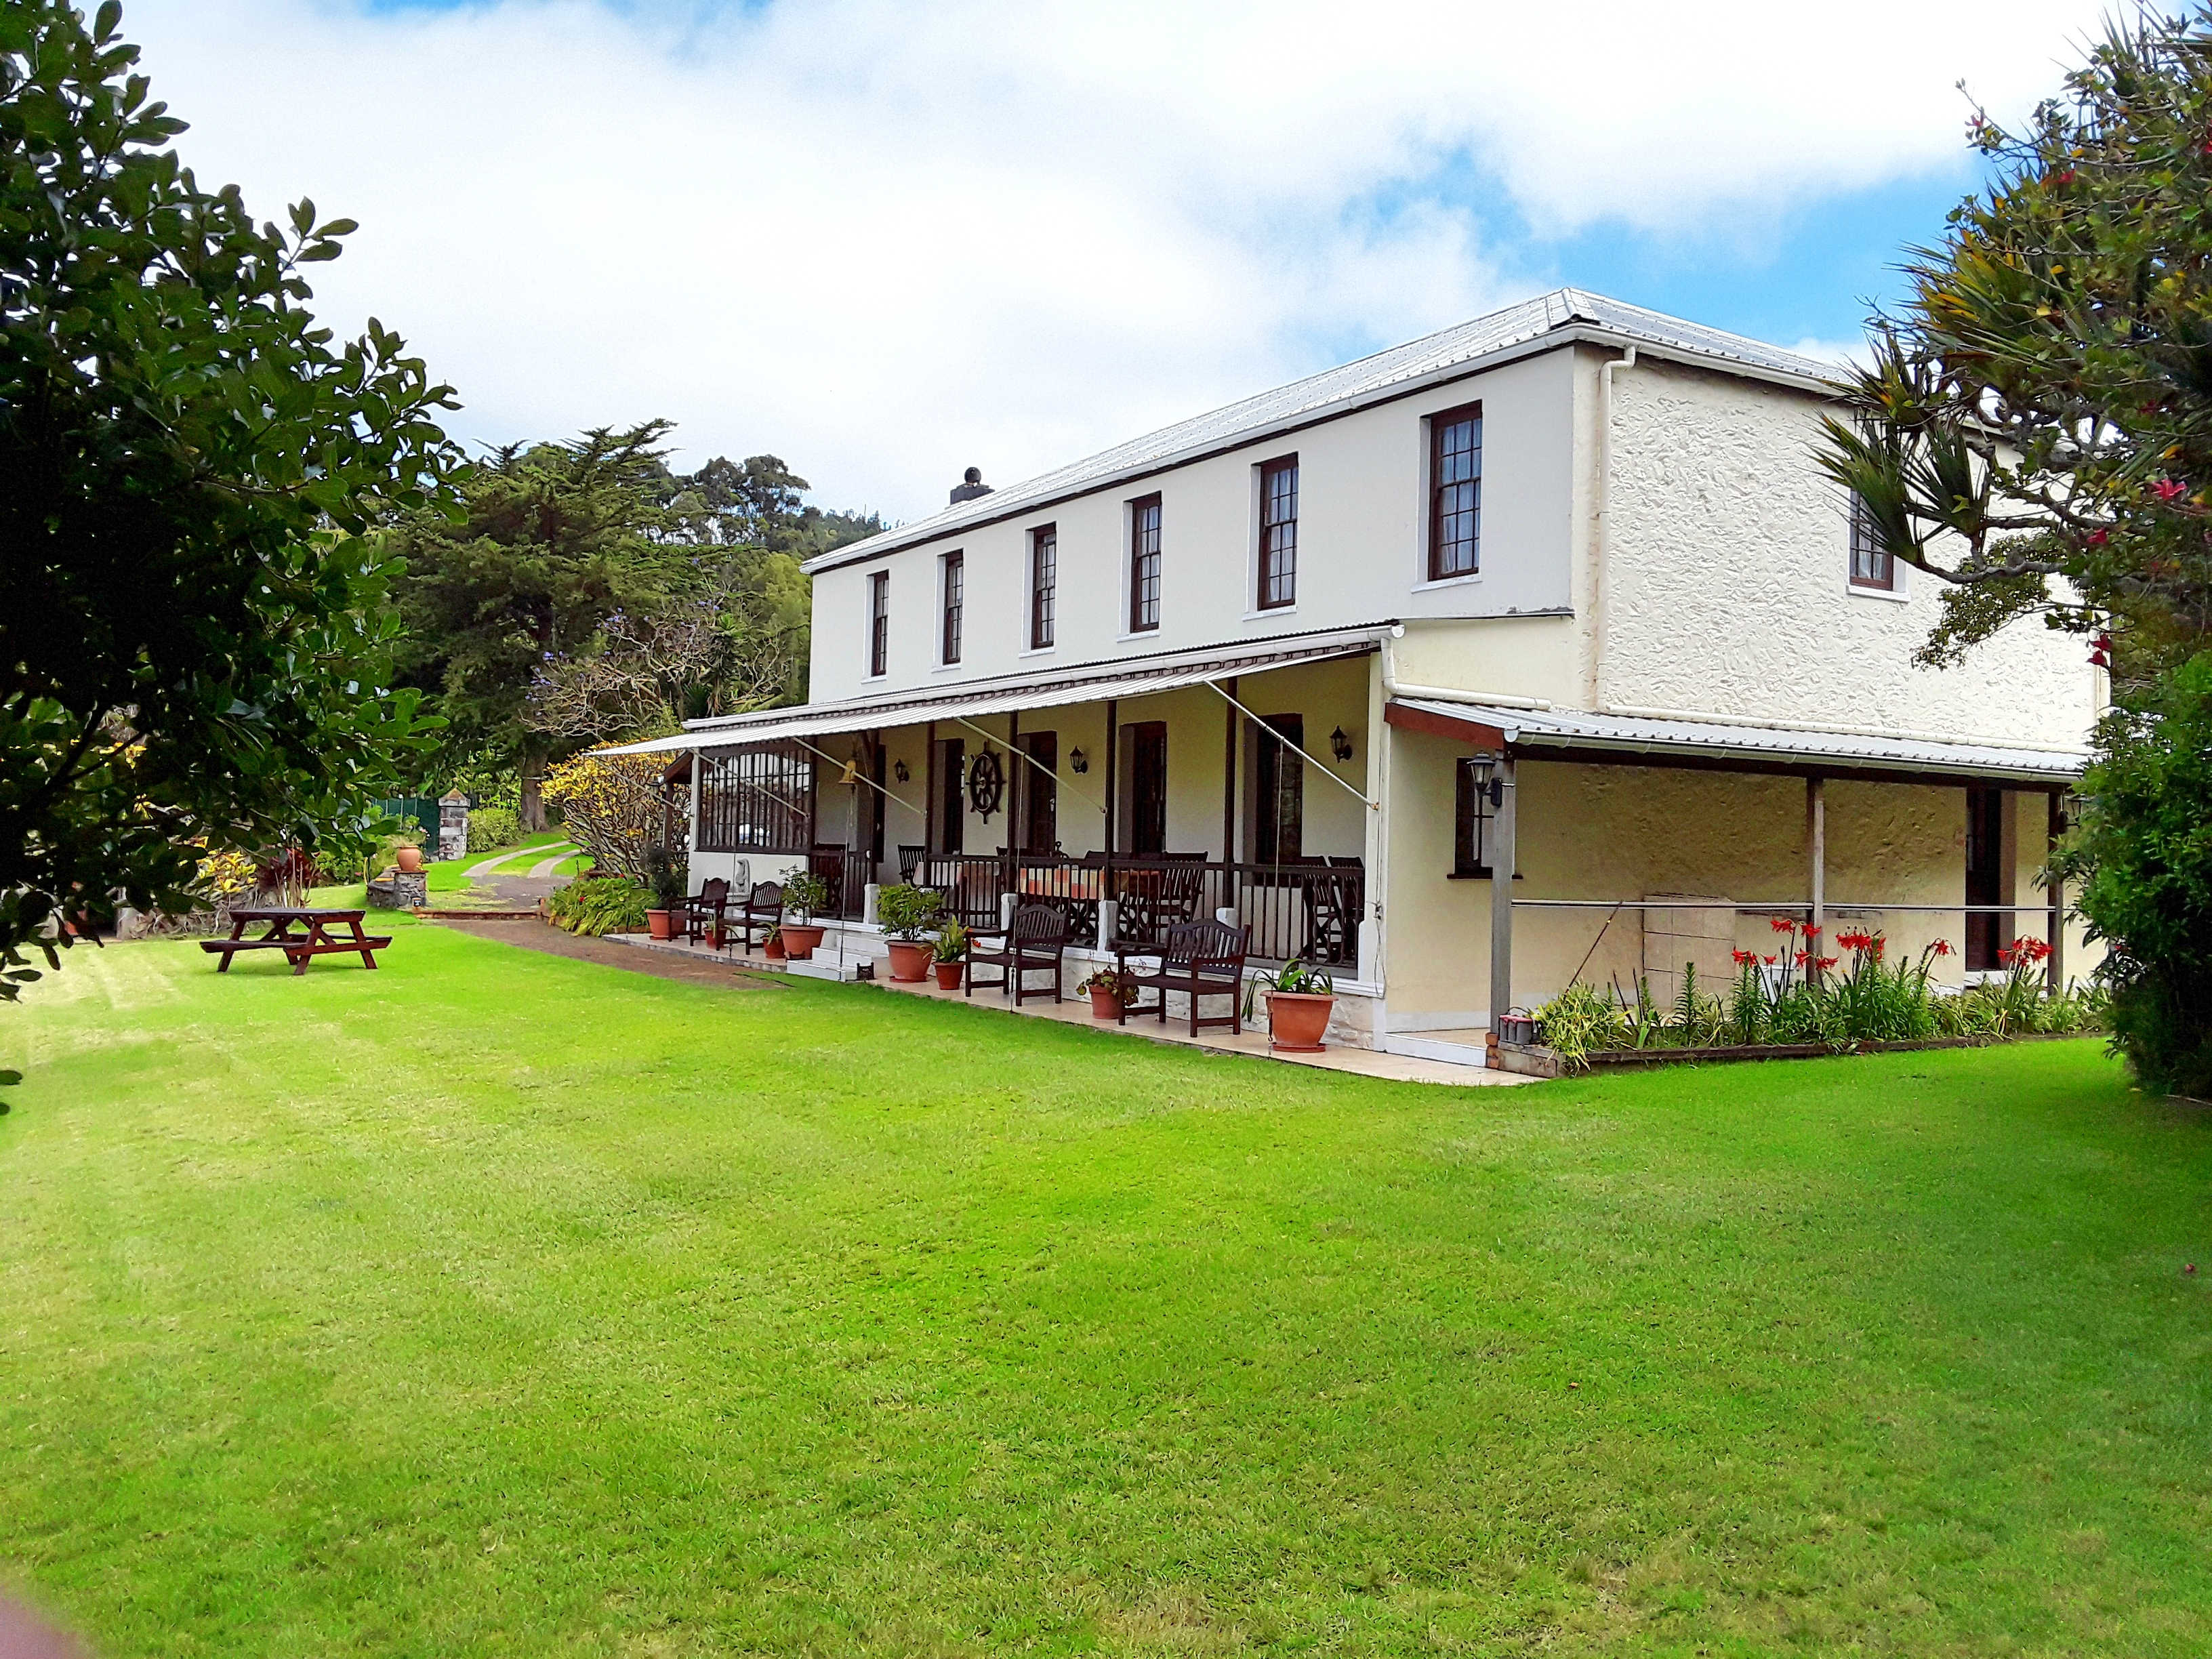 Farm Lodge - Hotel St Helena